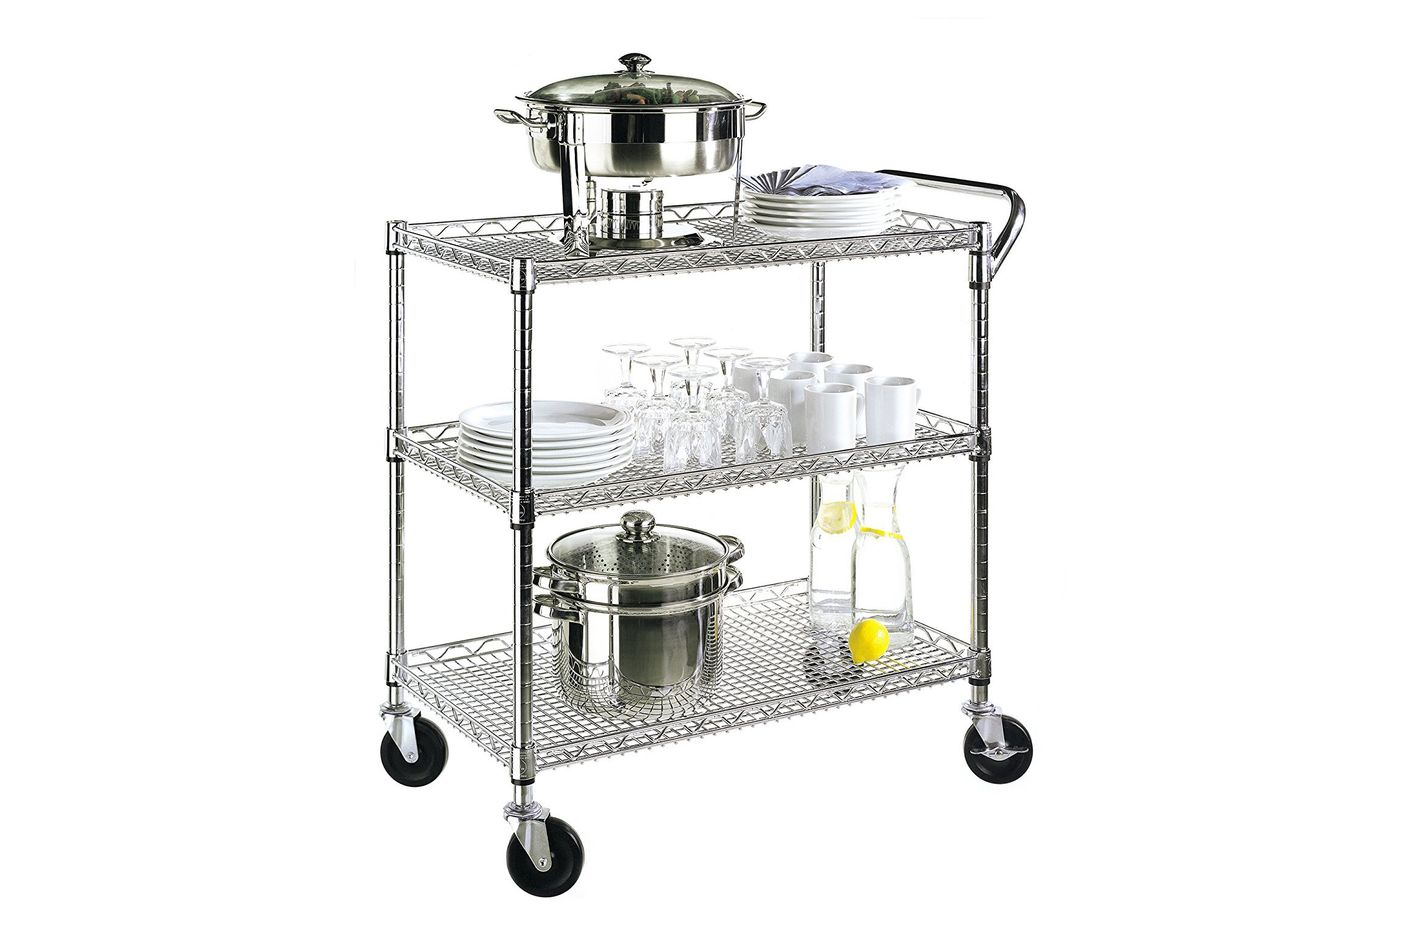 Seville Classics Industrial All-Purpose Utility Cart